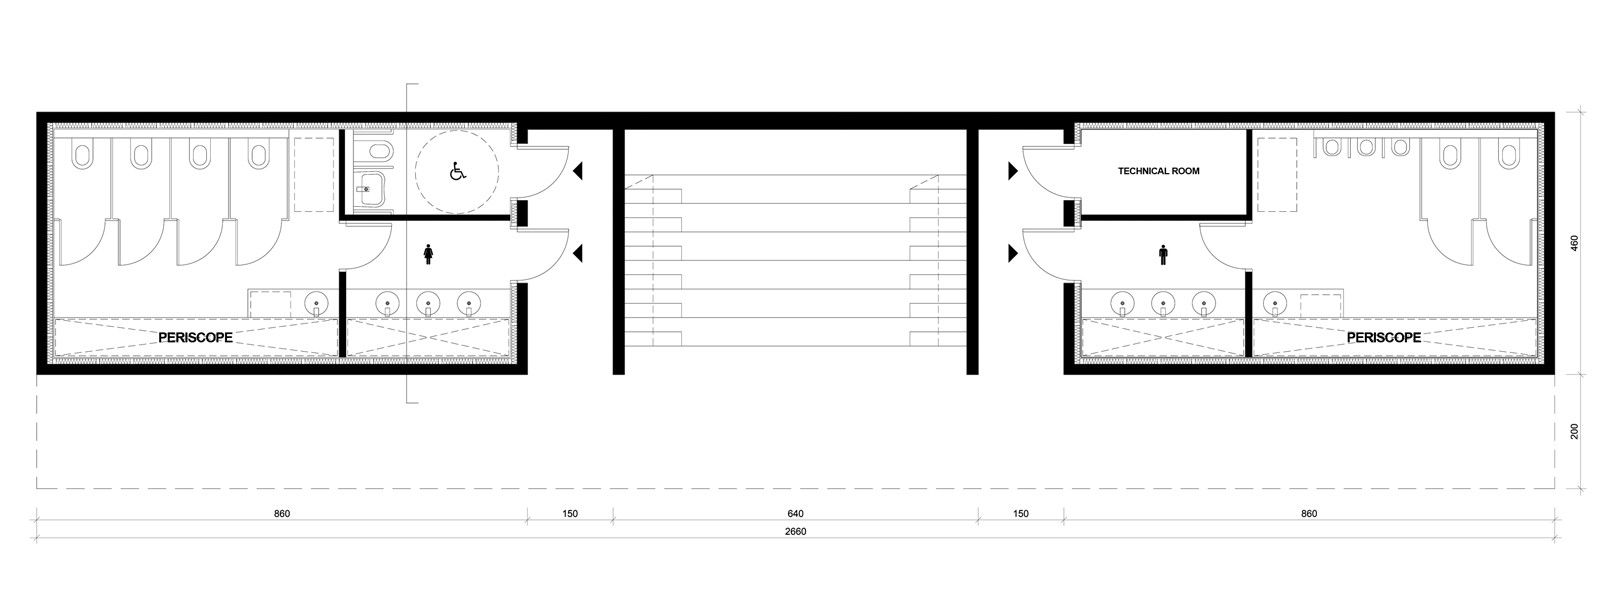 public toilet design plan. Gallery of This Public Toilet has a Periscope That Offers Serene Sea View  14